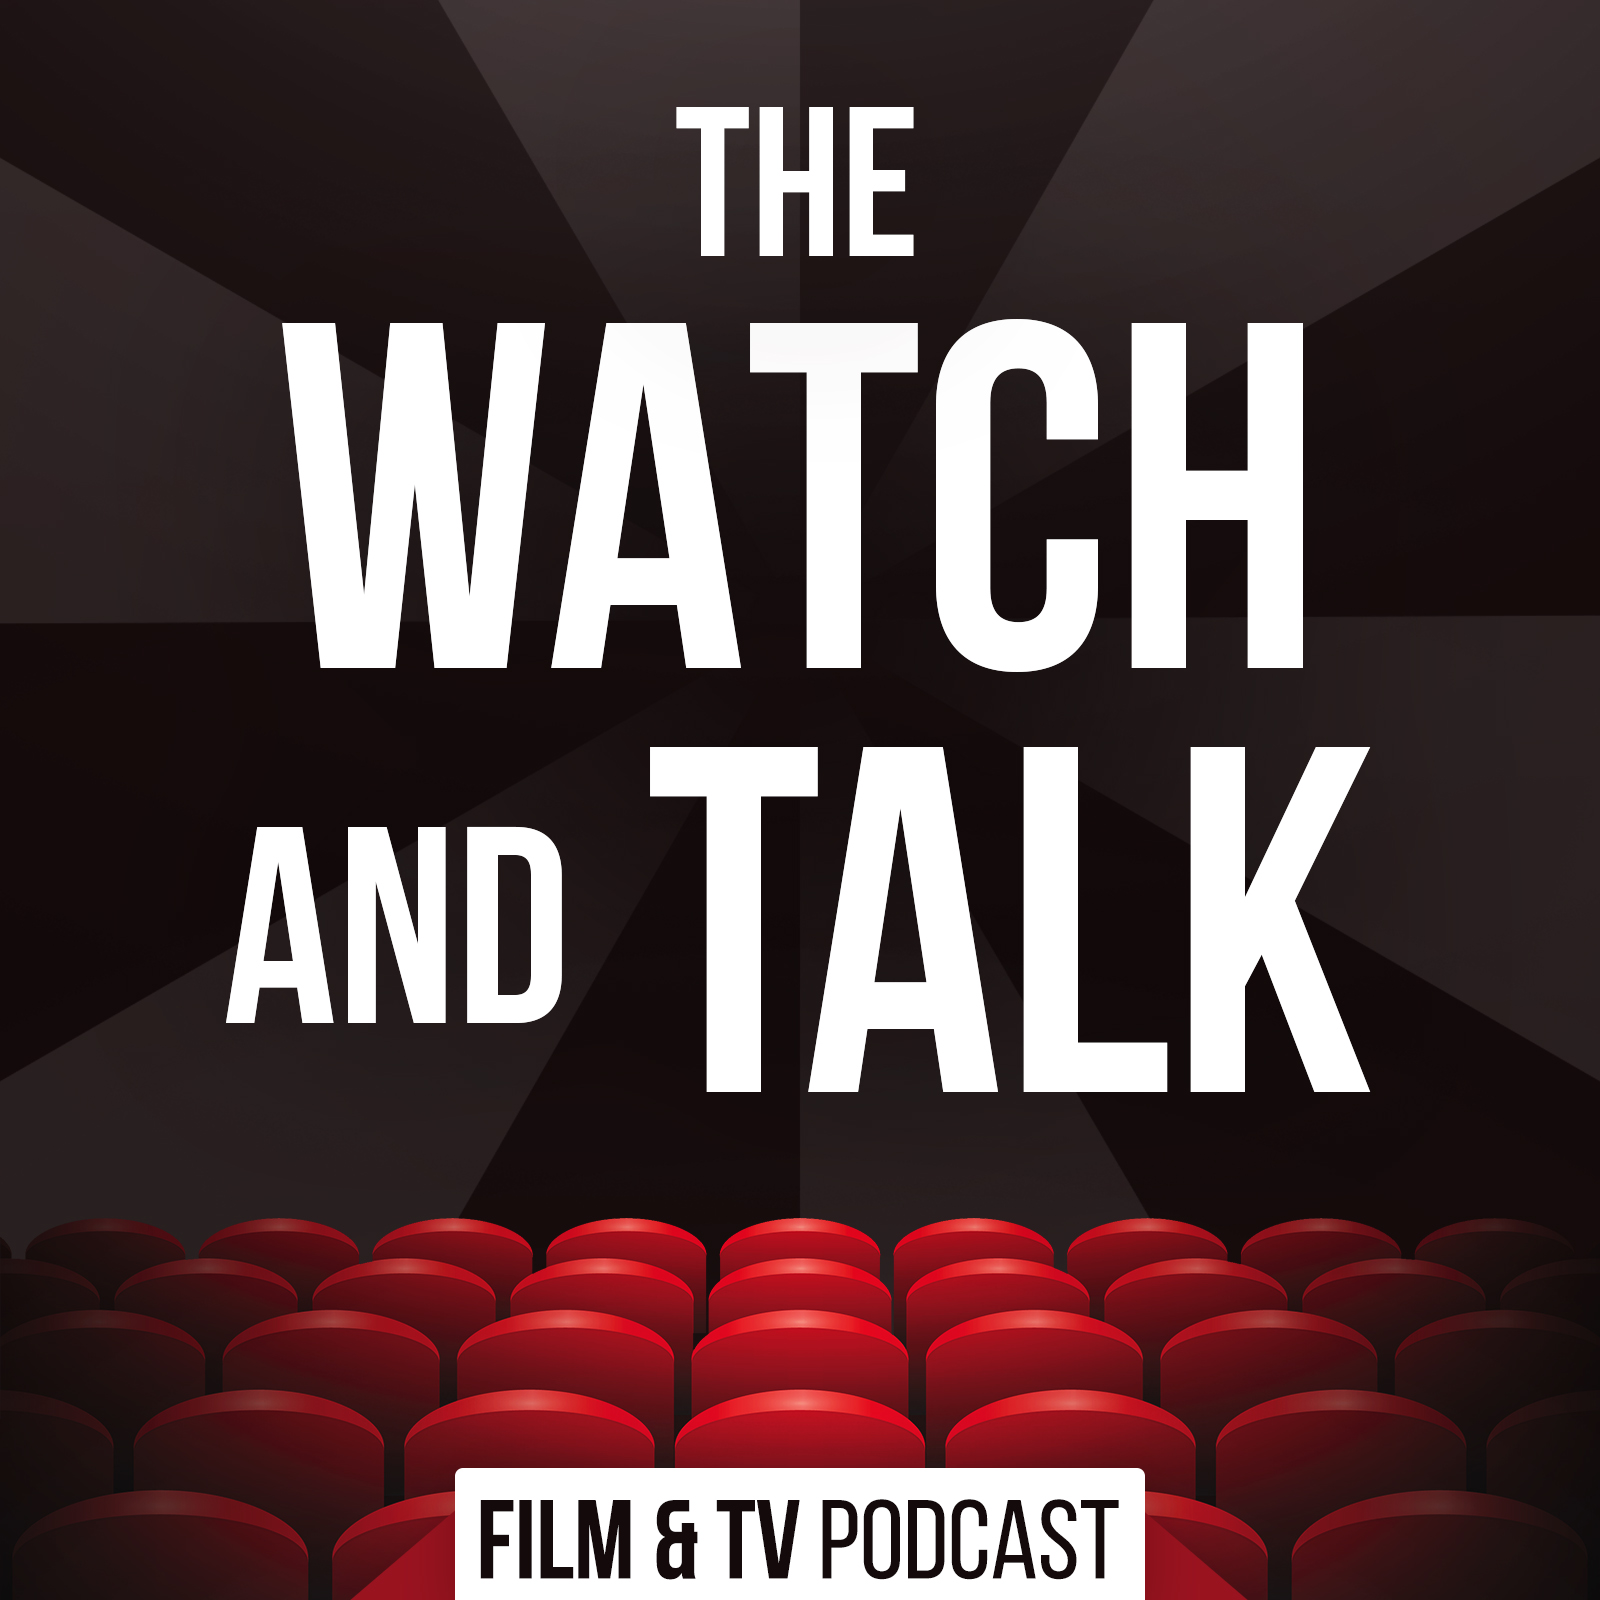 The Watch and Talk | Film & TV Podcast show art